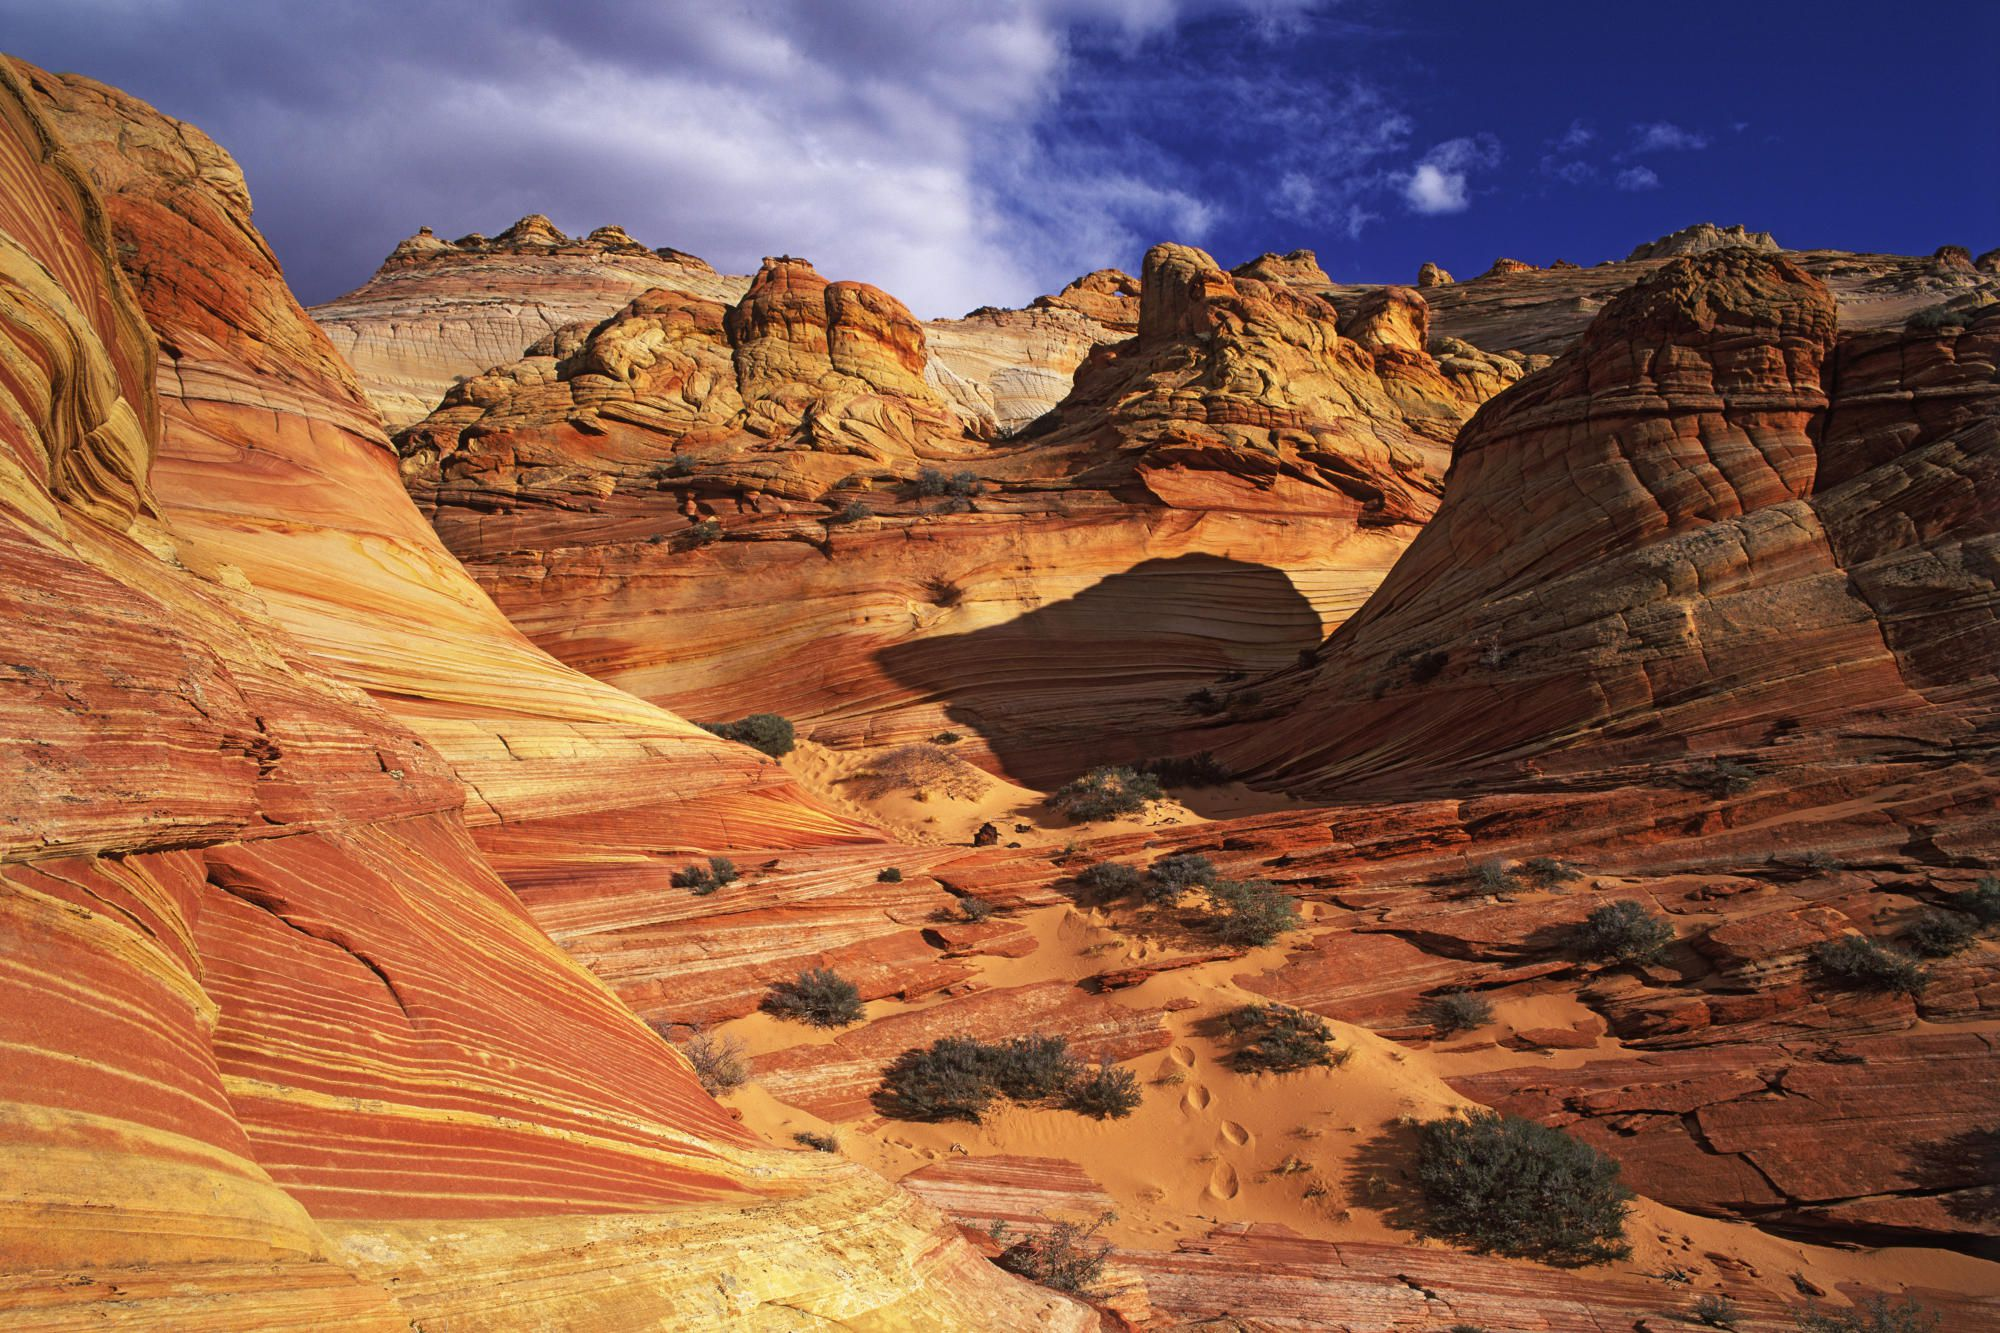 Slickrock formation, Coyote Buttes area of Paria Canyon, Vermillion Cliffs Wilderness Area, Arizona.